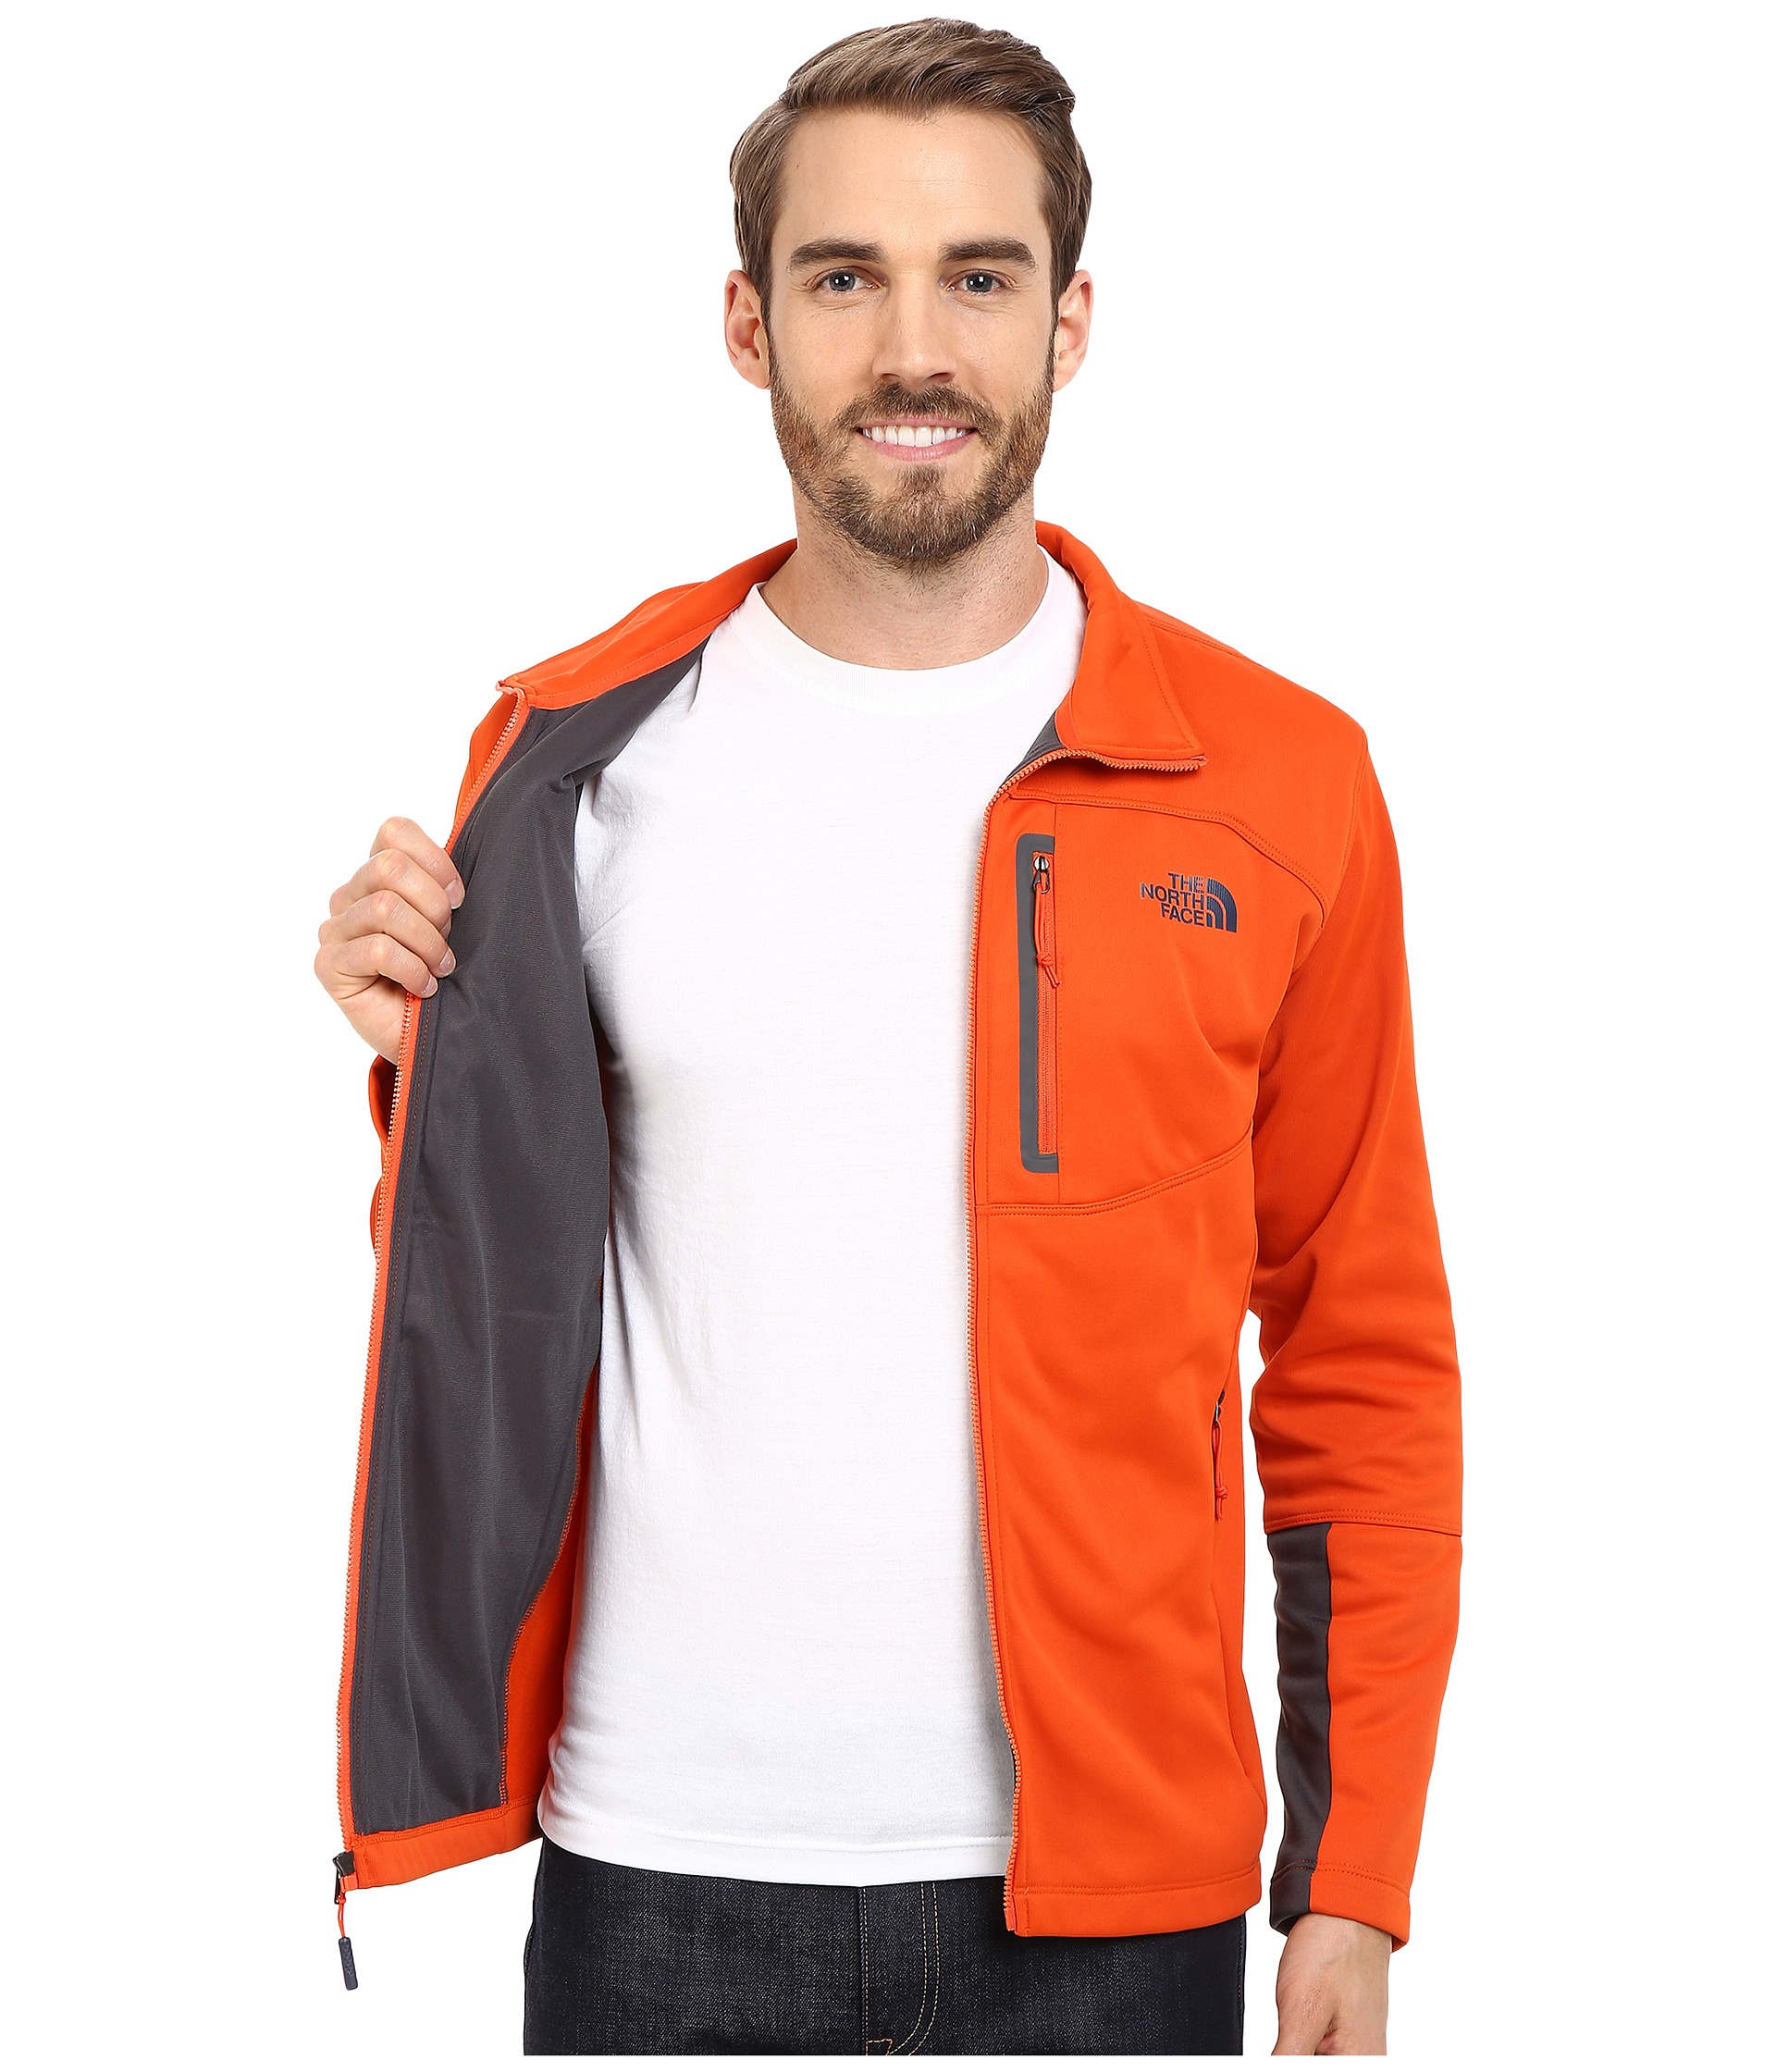 f0003cb6c Men's Orange Canyonlands Full Zip Sweatshirt